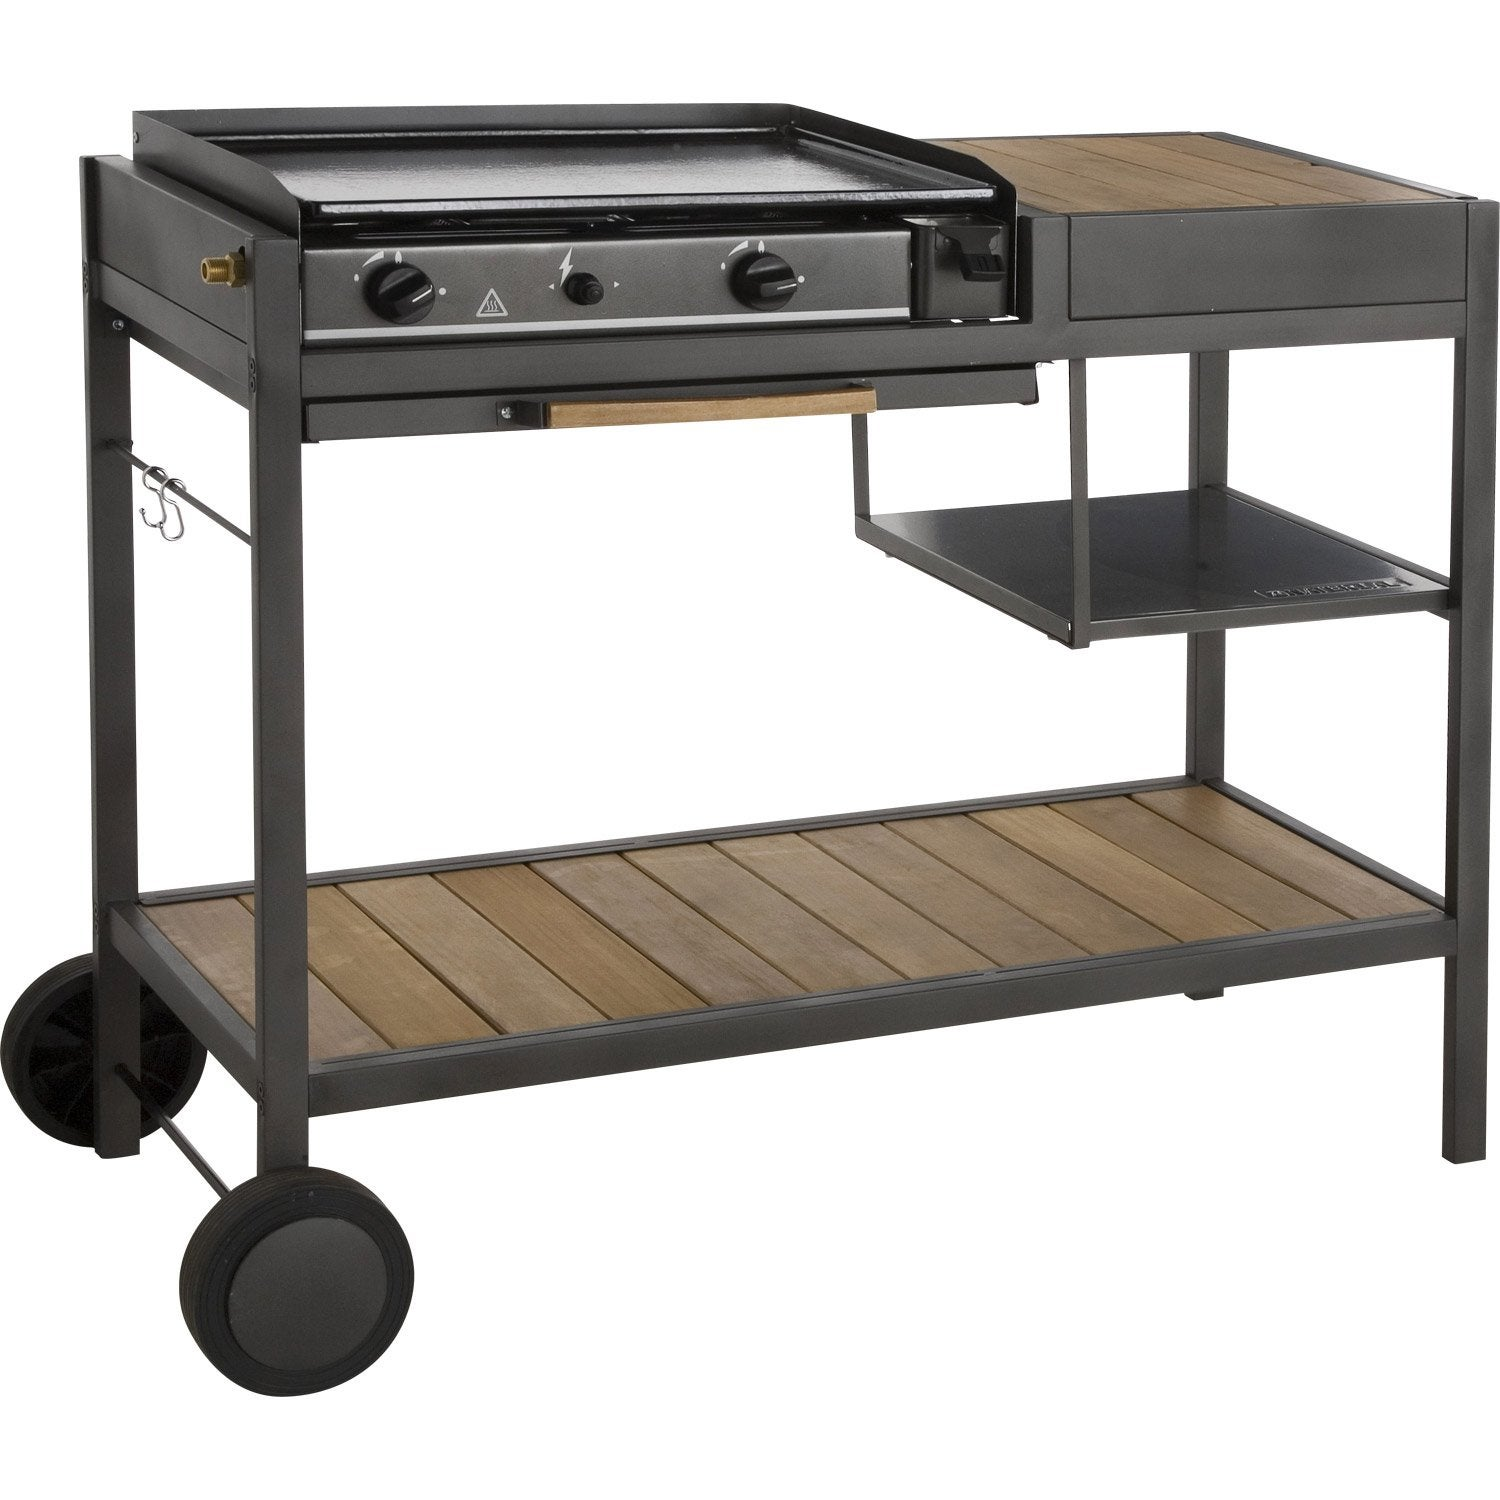 Plancha gaz inox leroy merlin barbecue au charbon de bois for Barbecue a gaz leroy merlin